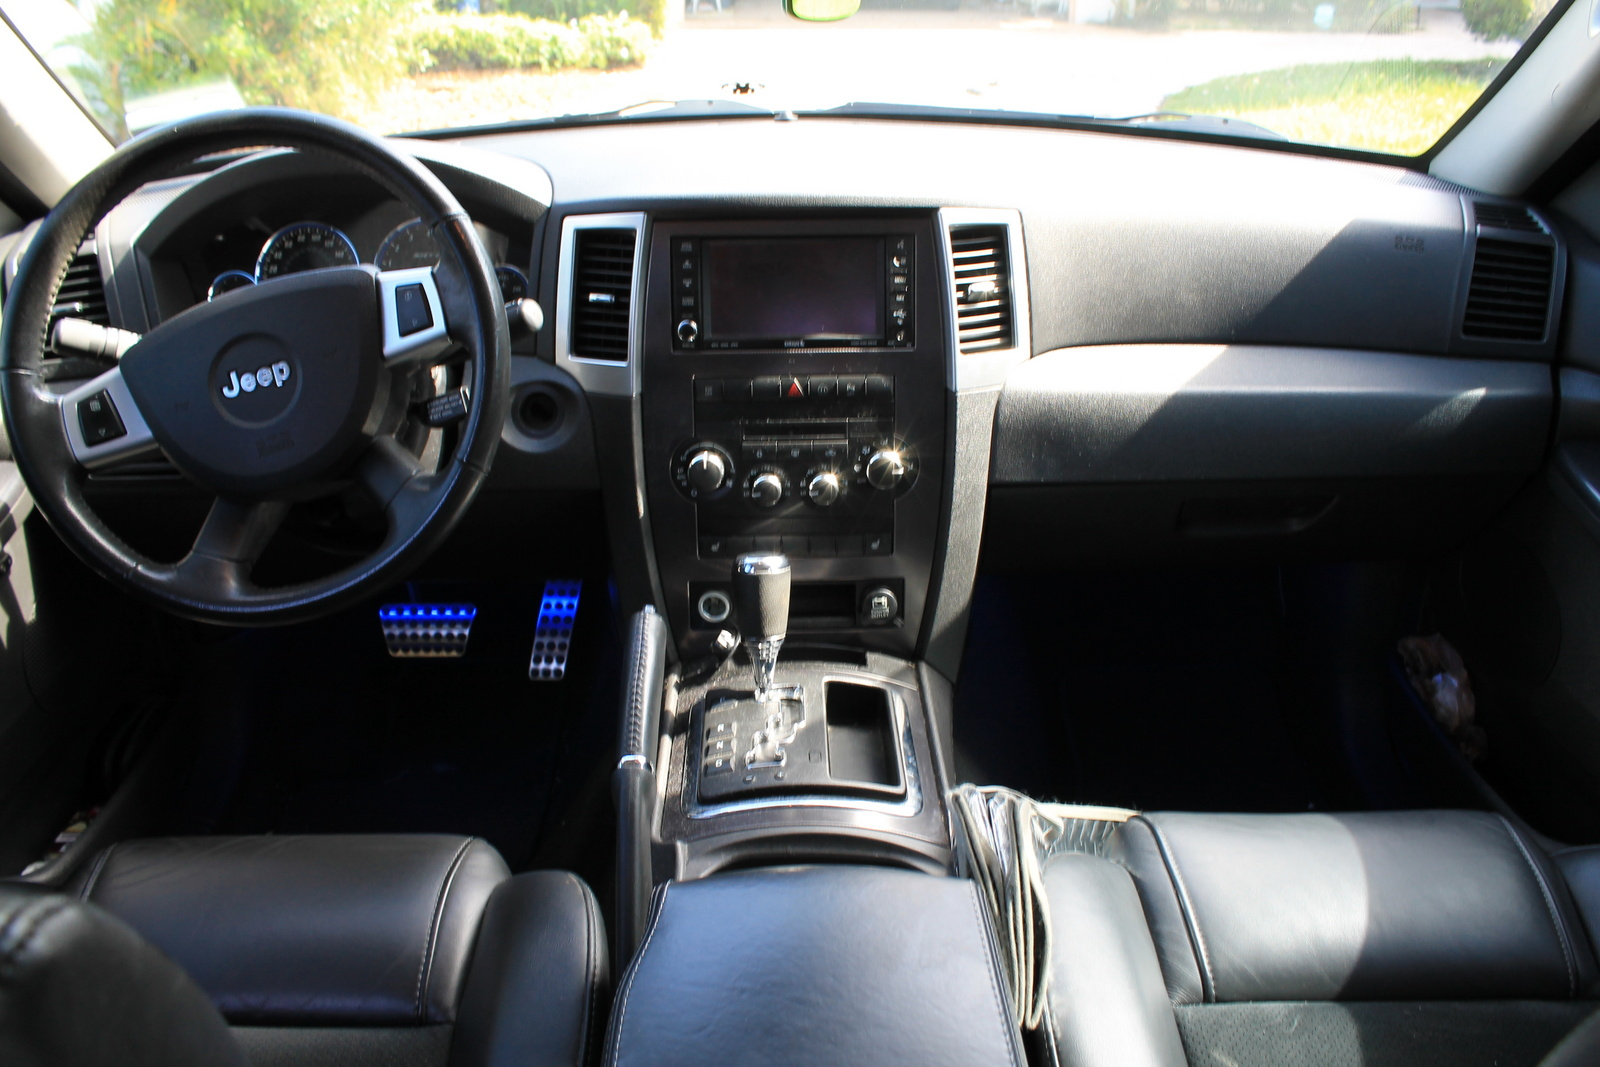 Used Jeep Grand Cherokee Srt8 >> 2008 Jeep Grand Cherokee - Pictures - CarGurus